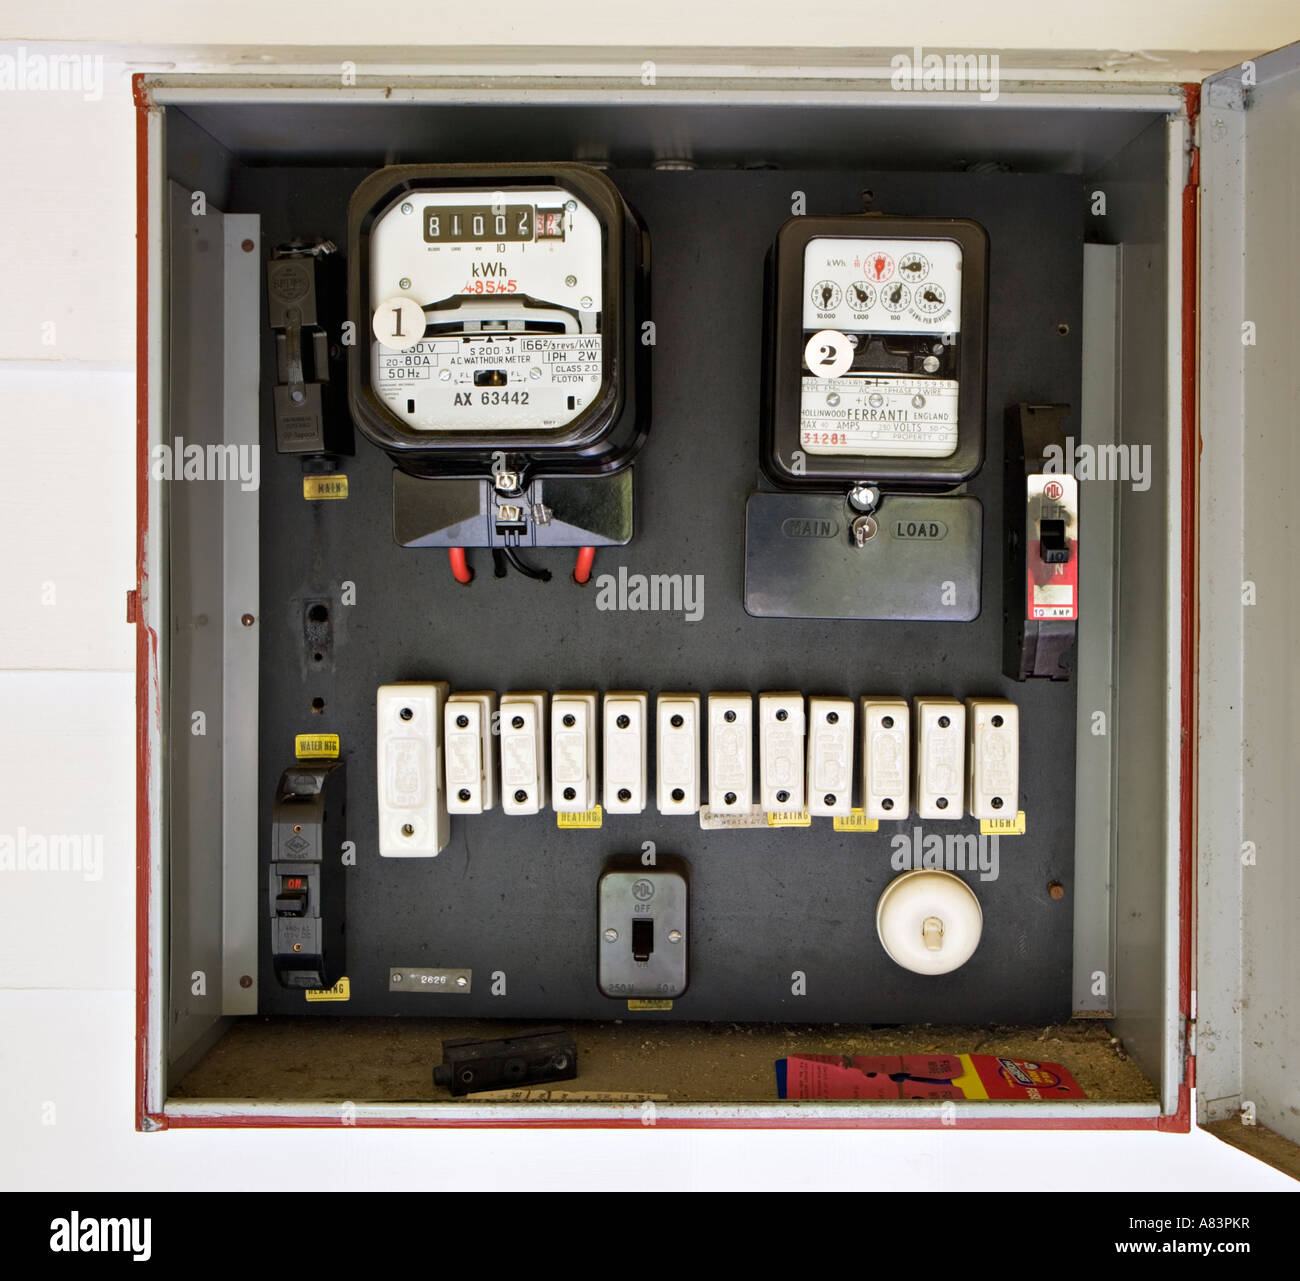 New Gas Connection Cost >> Electricity meter in box with old style fuses, circa 1962, in New Stock Photo: 11977738 - Alamy